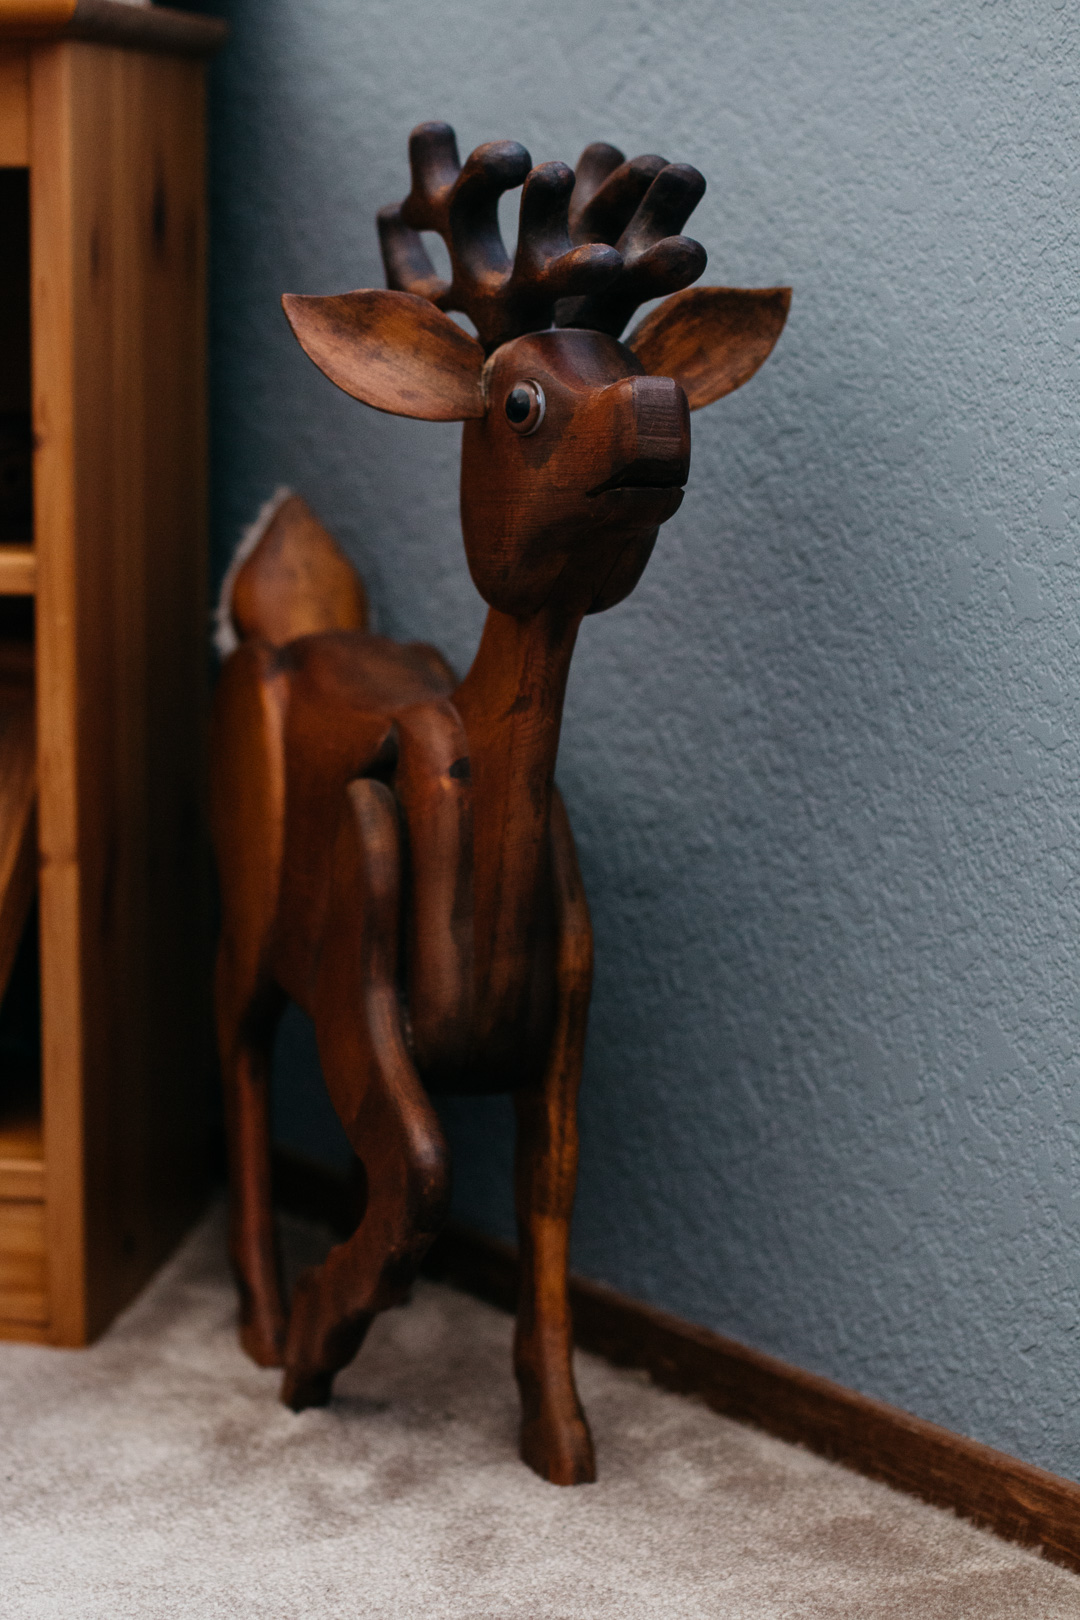 A vertical side angle shot of a wood crafted reindeer.